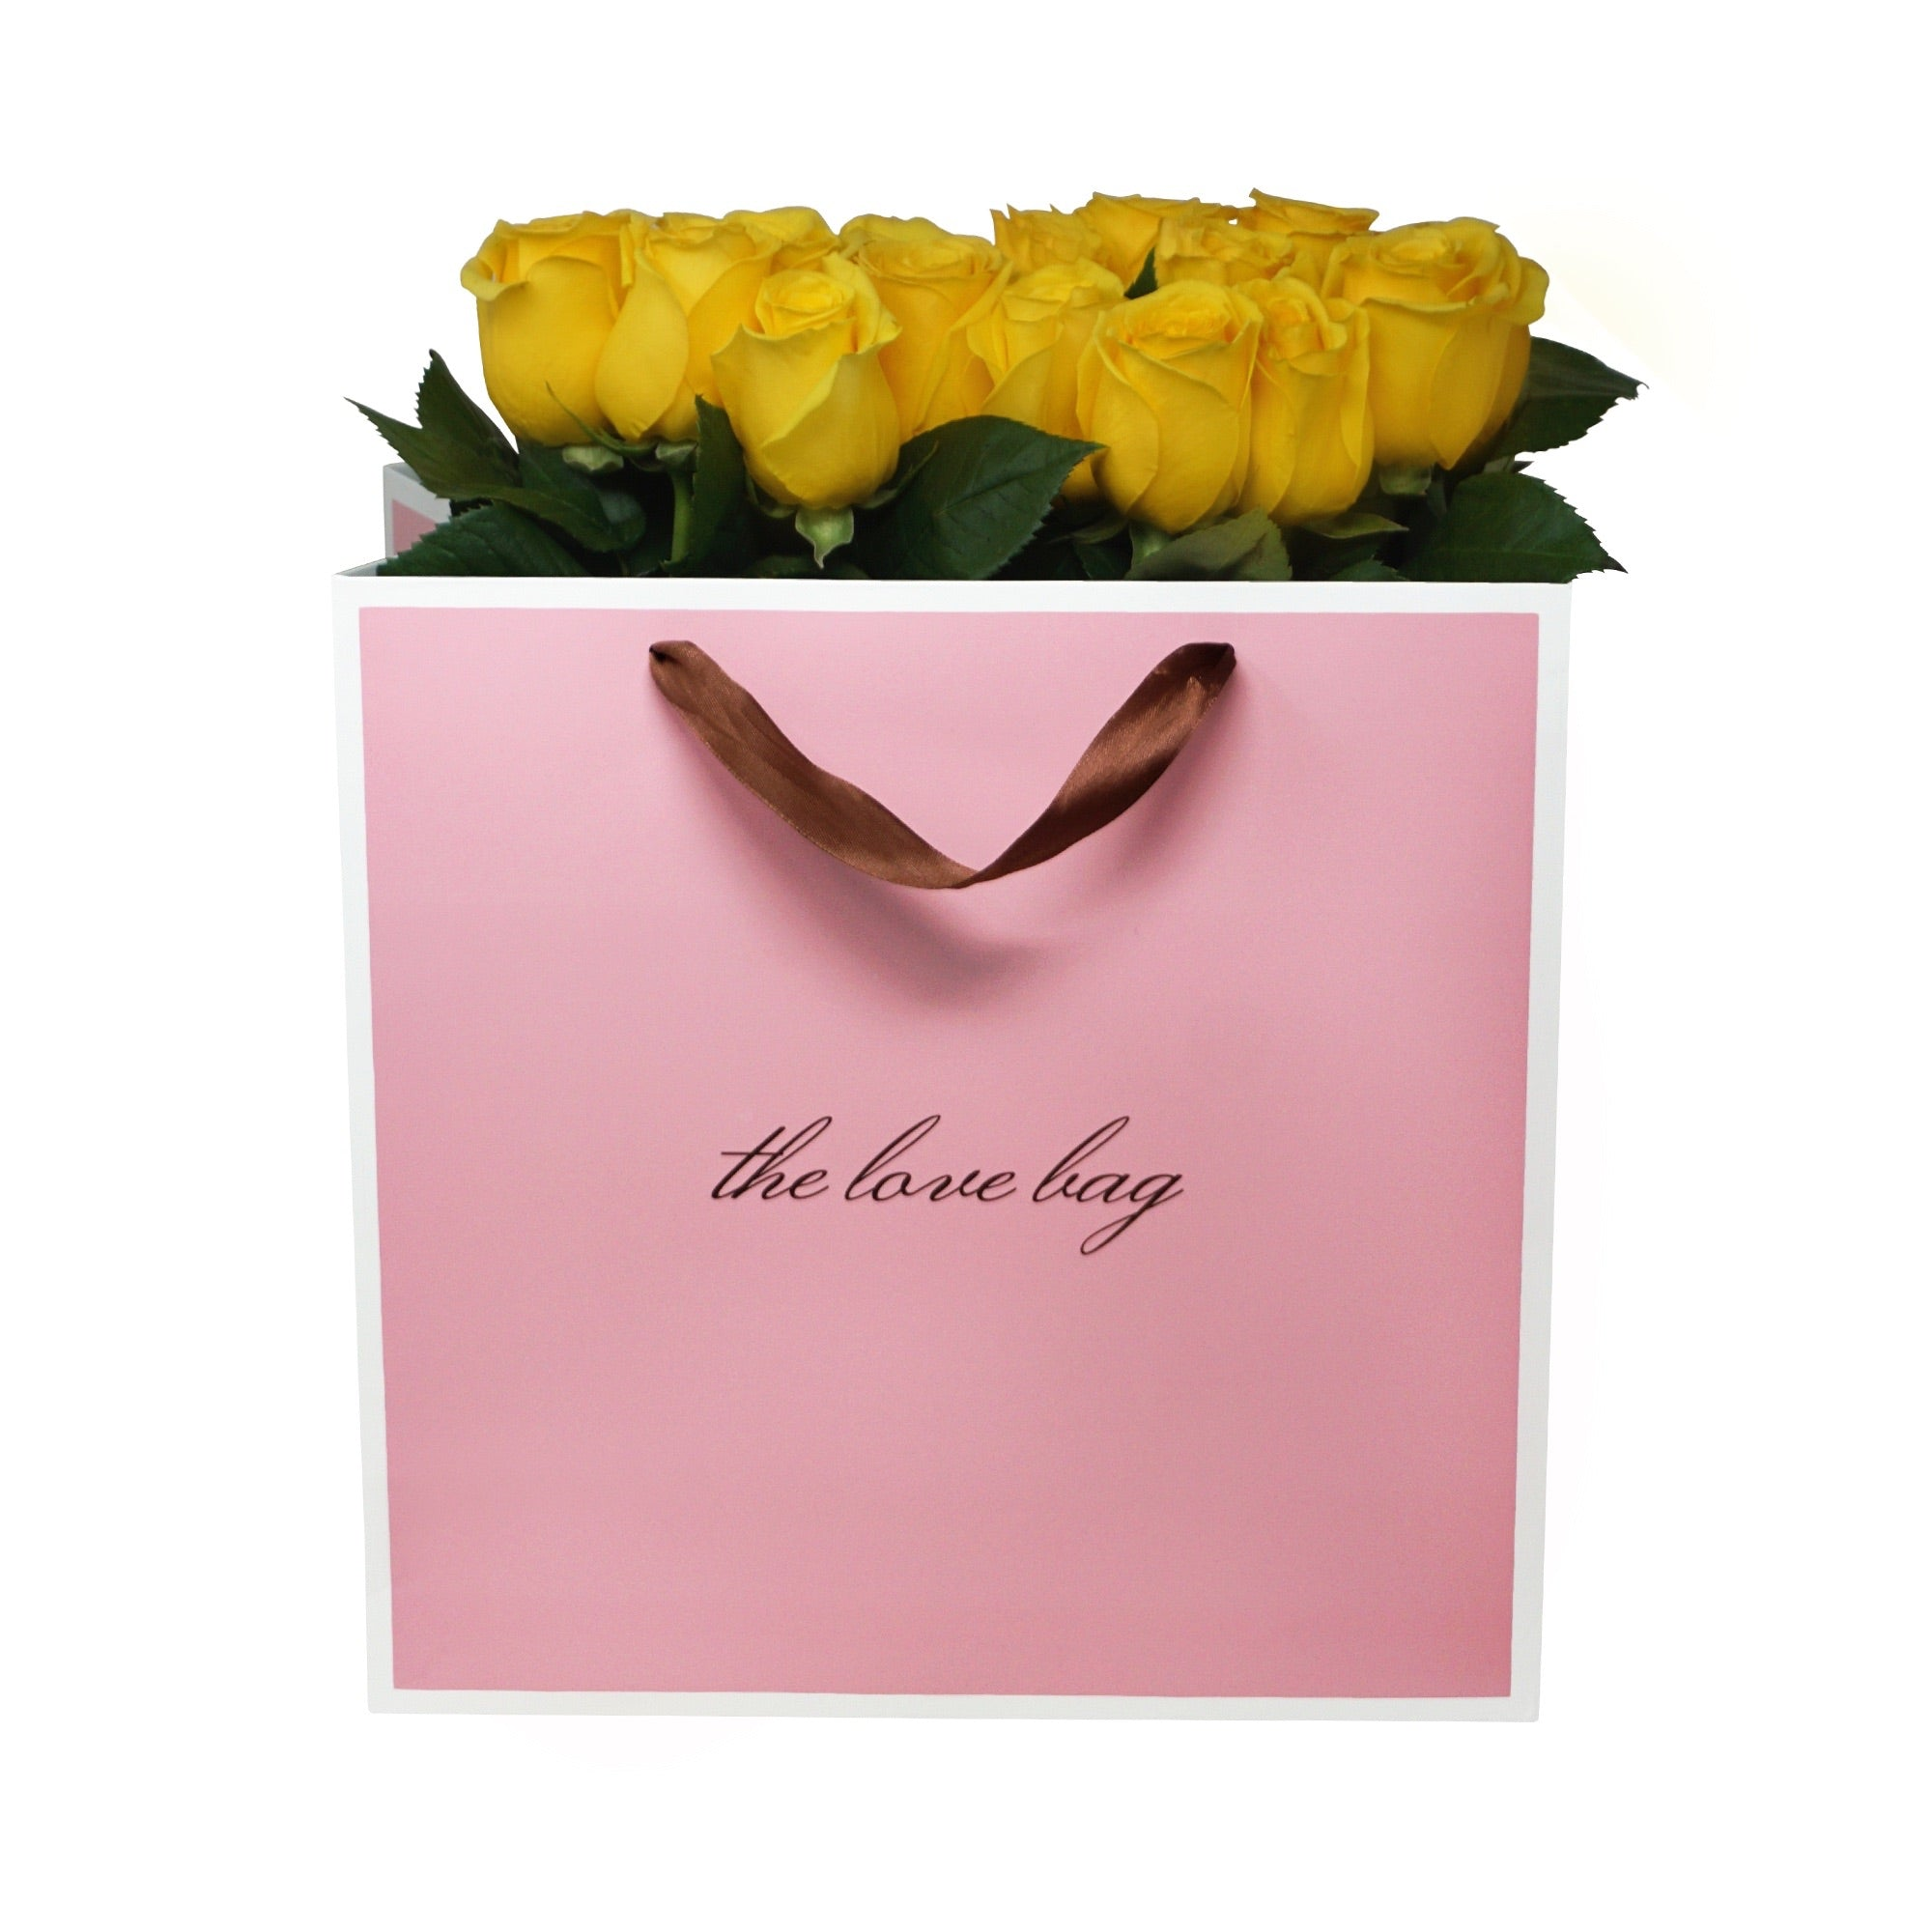 Yellow Roses Bouquet in The Love Bag - The Love Box Flowers